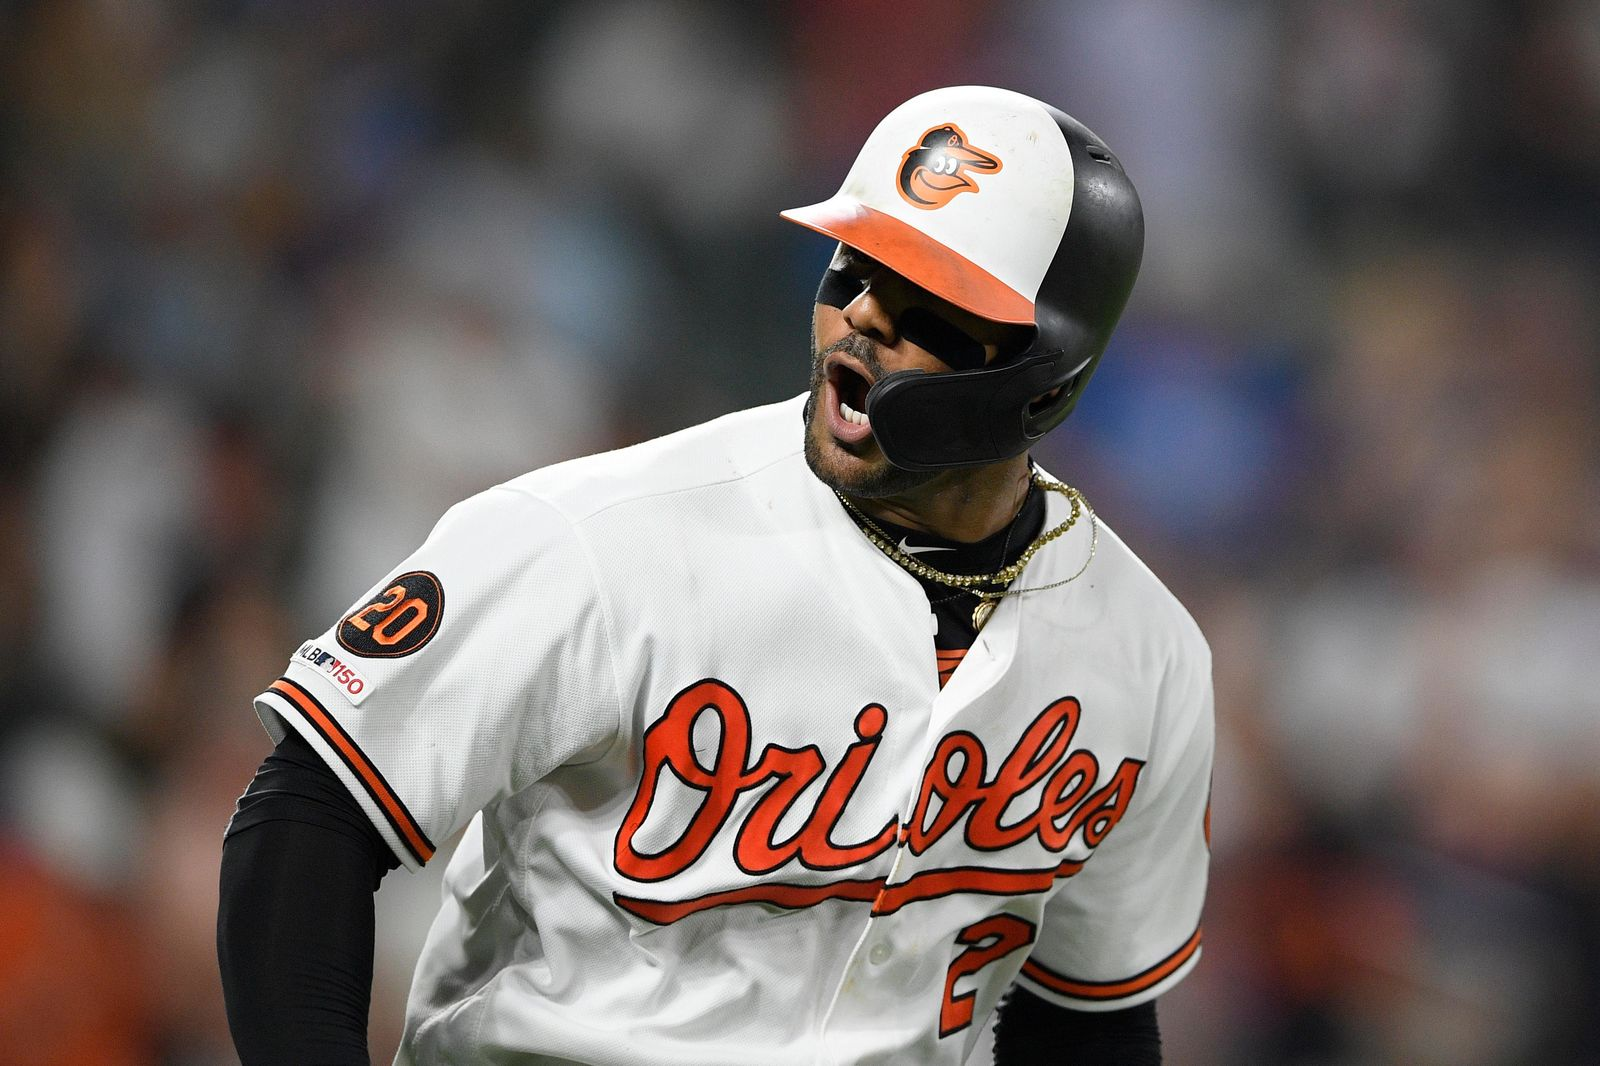 Baltimore Orioles' Jonathan Villar reacts towards the dugout after he hit a three-run home run during the seventh inning of the team's baseball game against the Los Angeles Dodgers, Wednesday, Sept. 11, 2019, in Baltimore. Villar connected for the 6,106th homer in the majors this season. That topped the mark of 6,105 set in 2017. The Orioles won 7-3. (AP Photo/Nick Wass)